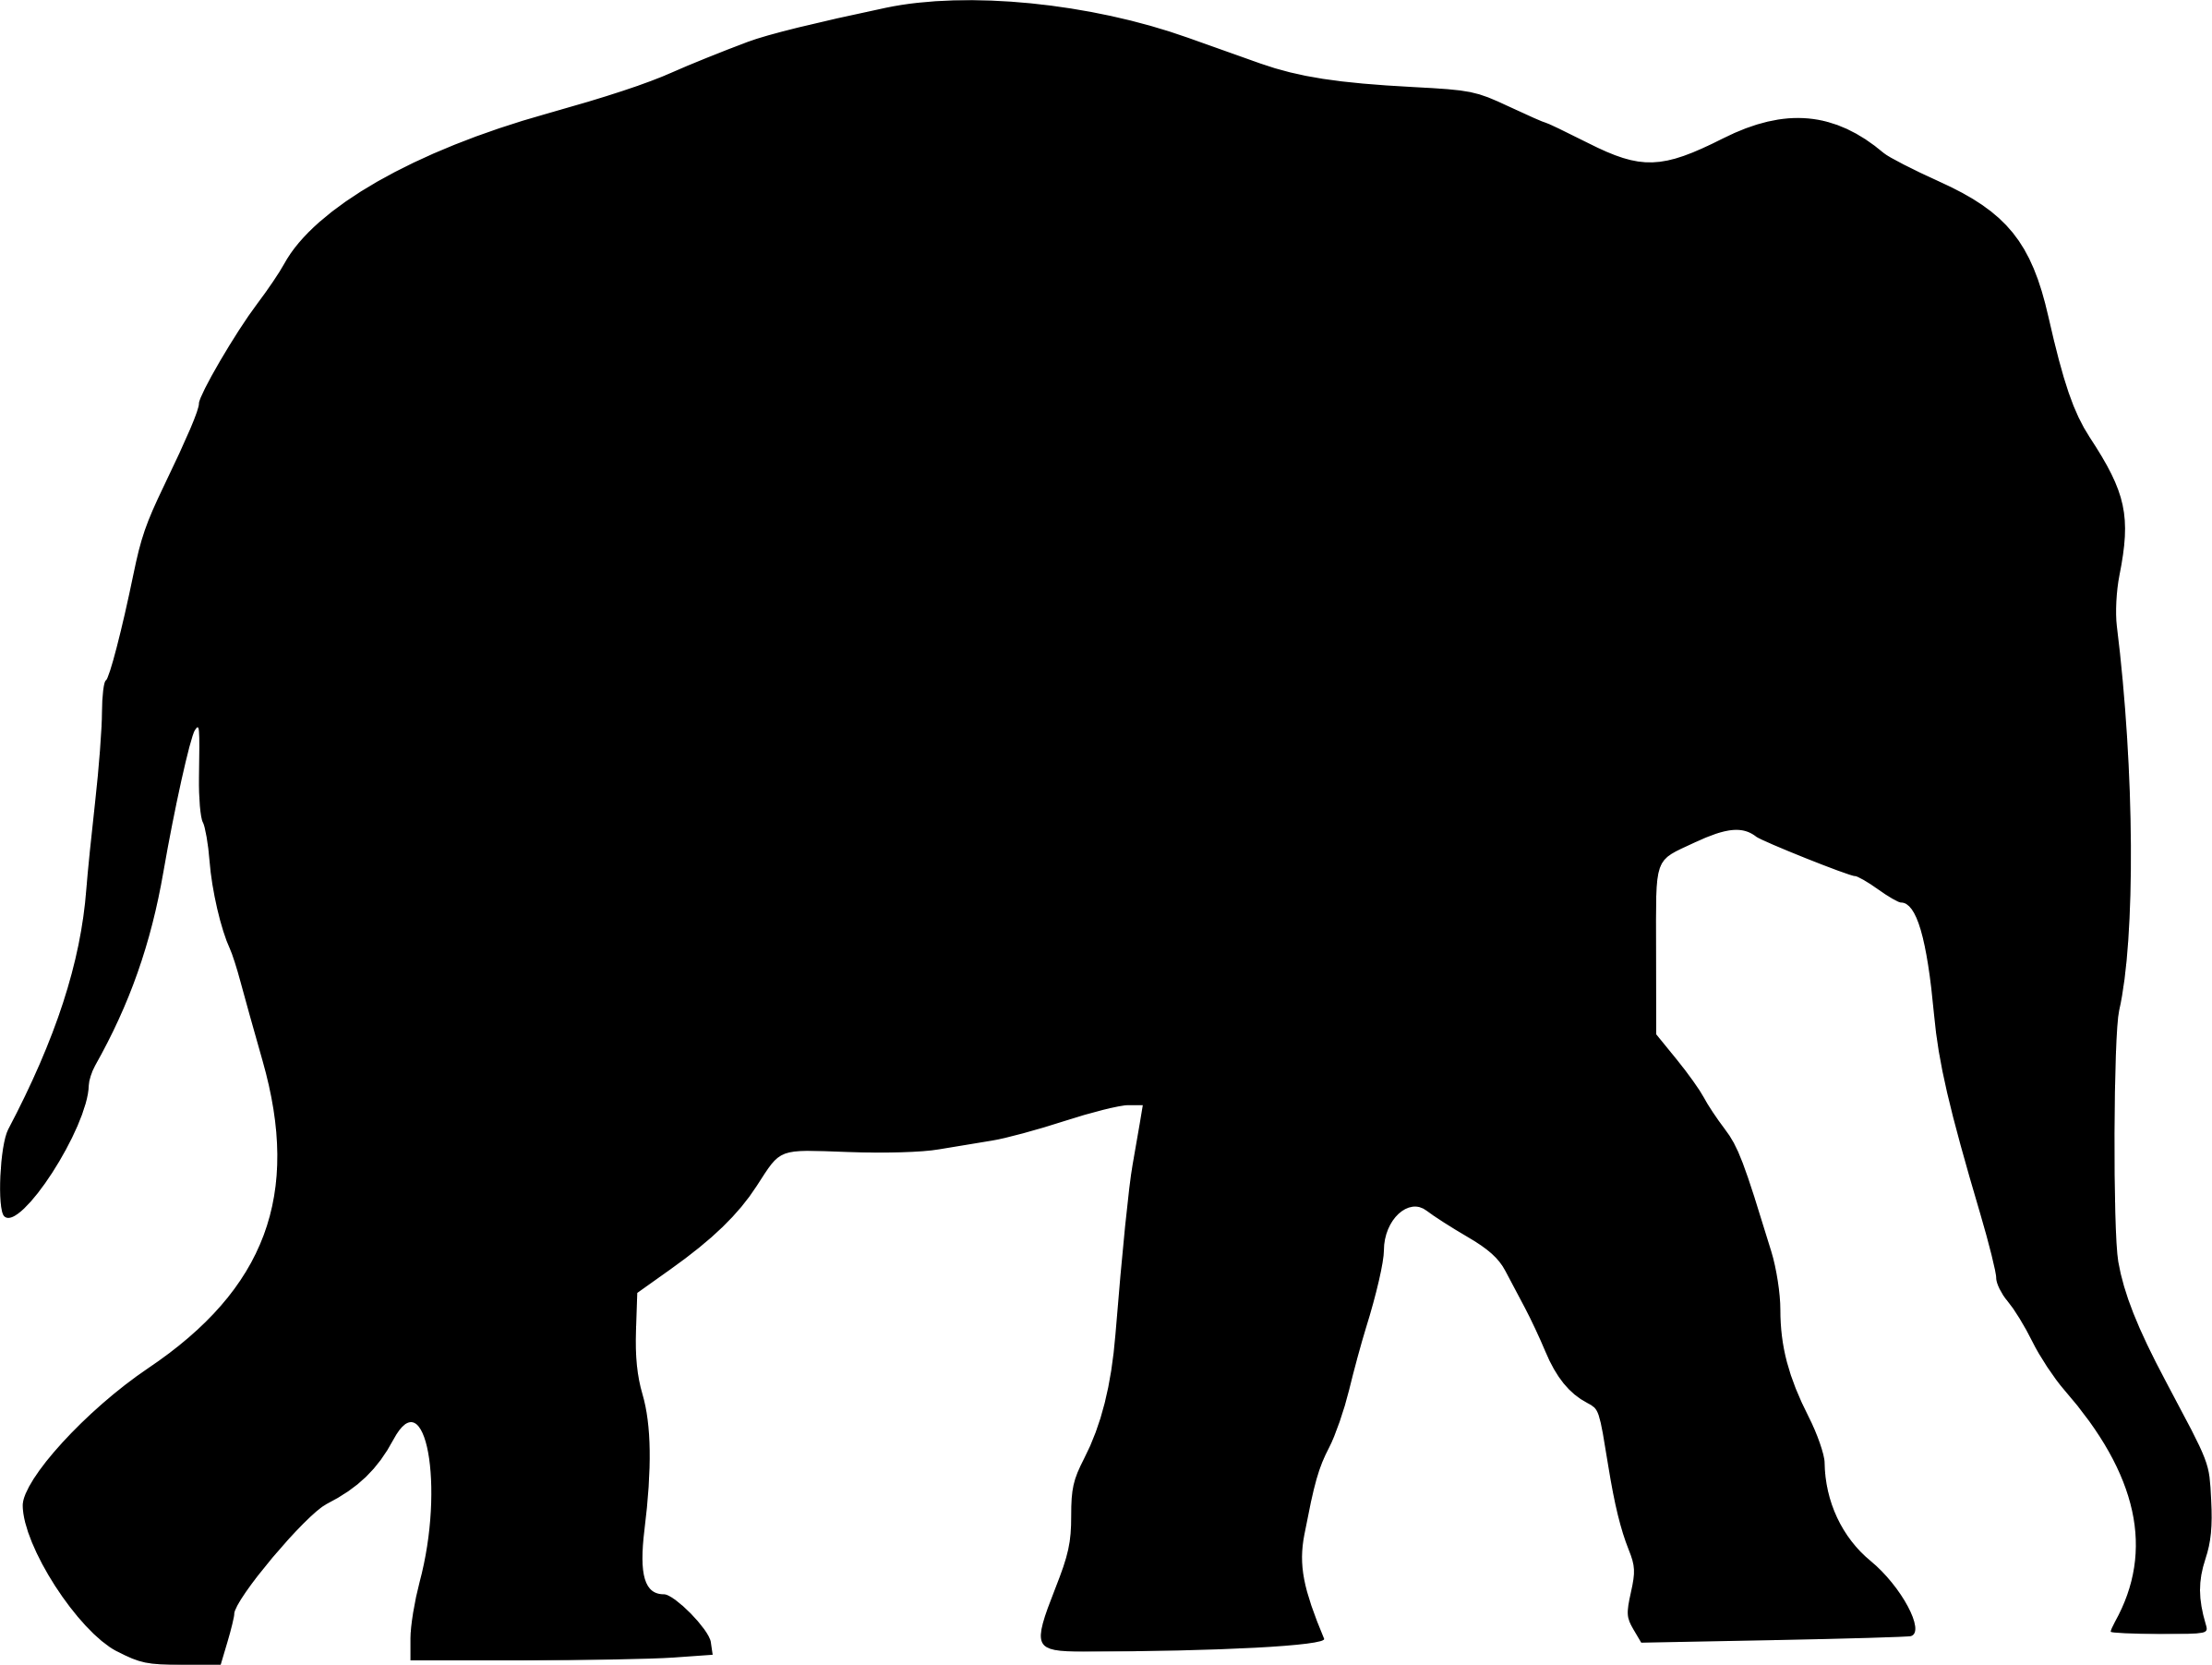 Elephant Clipart Silhouette Free Best Transparent Png.